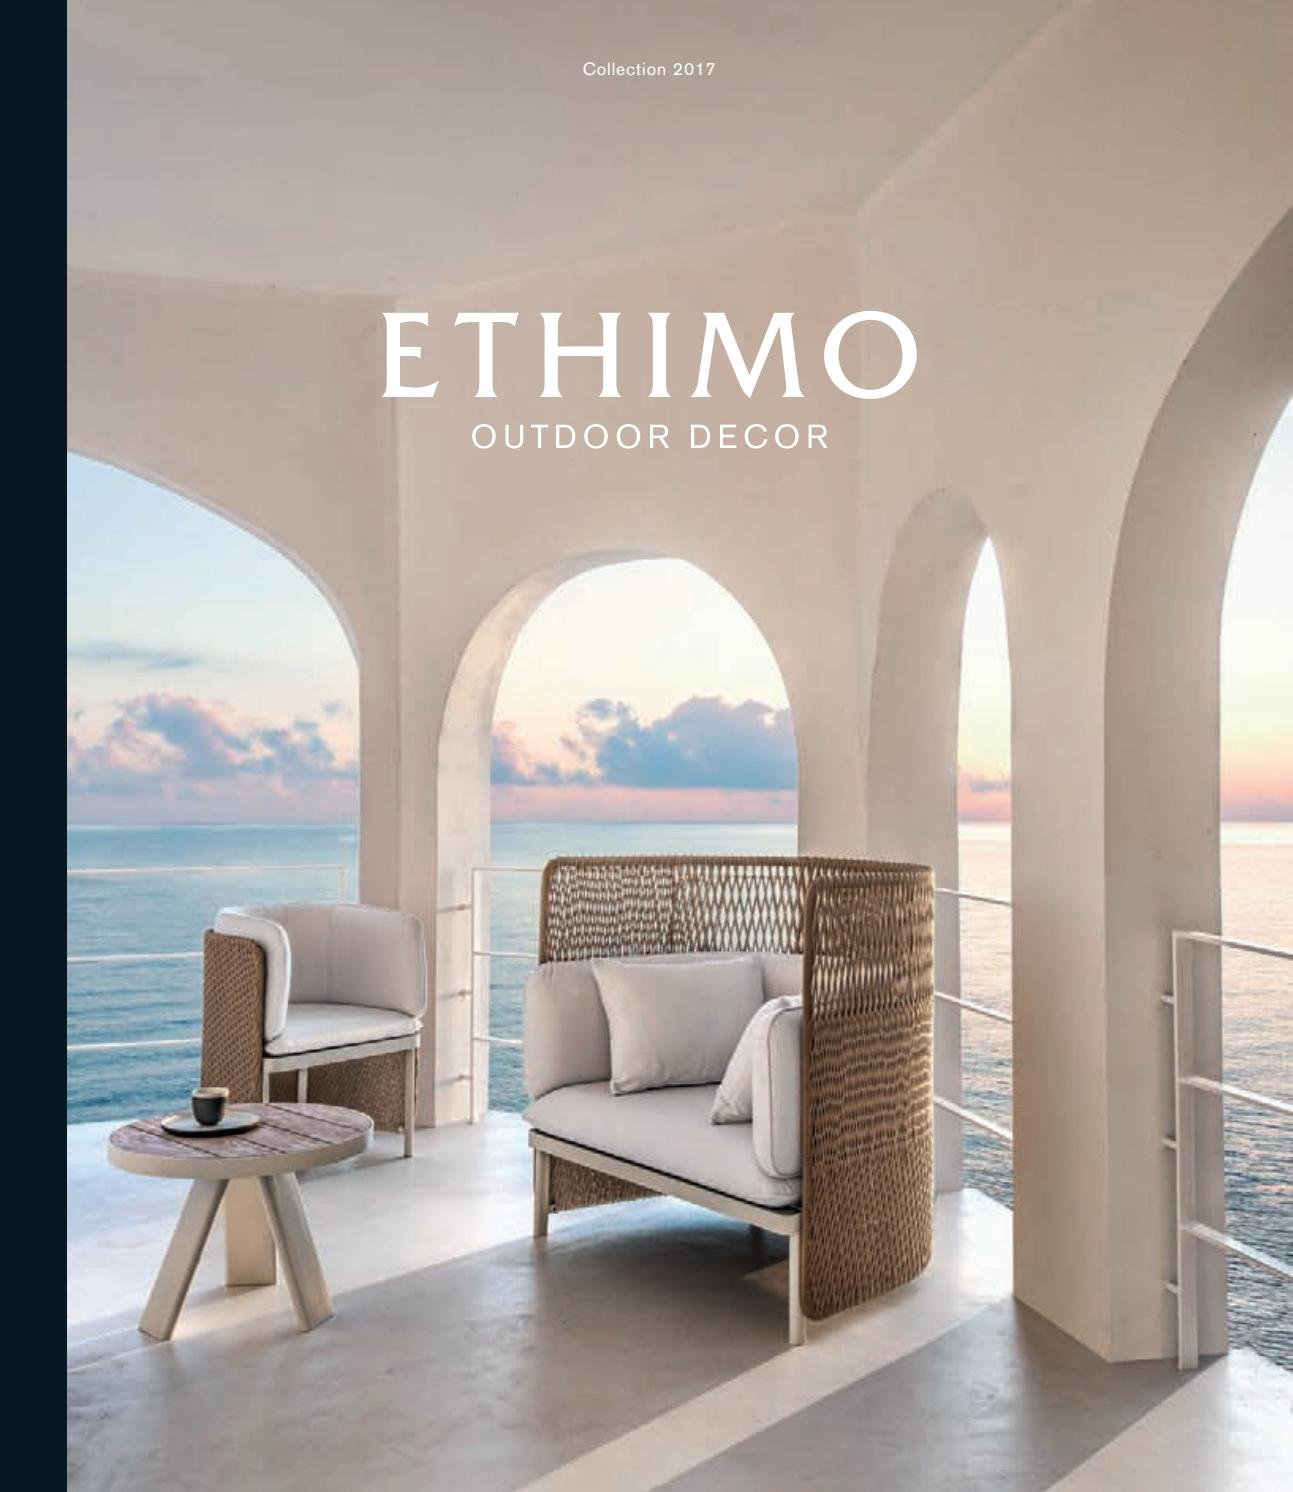 Ethimo Collection 2017 by Ethimo - issuu